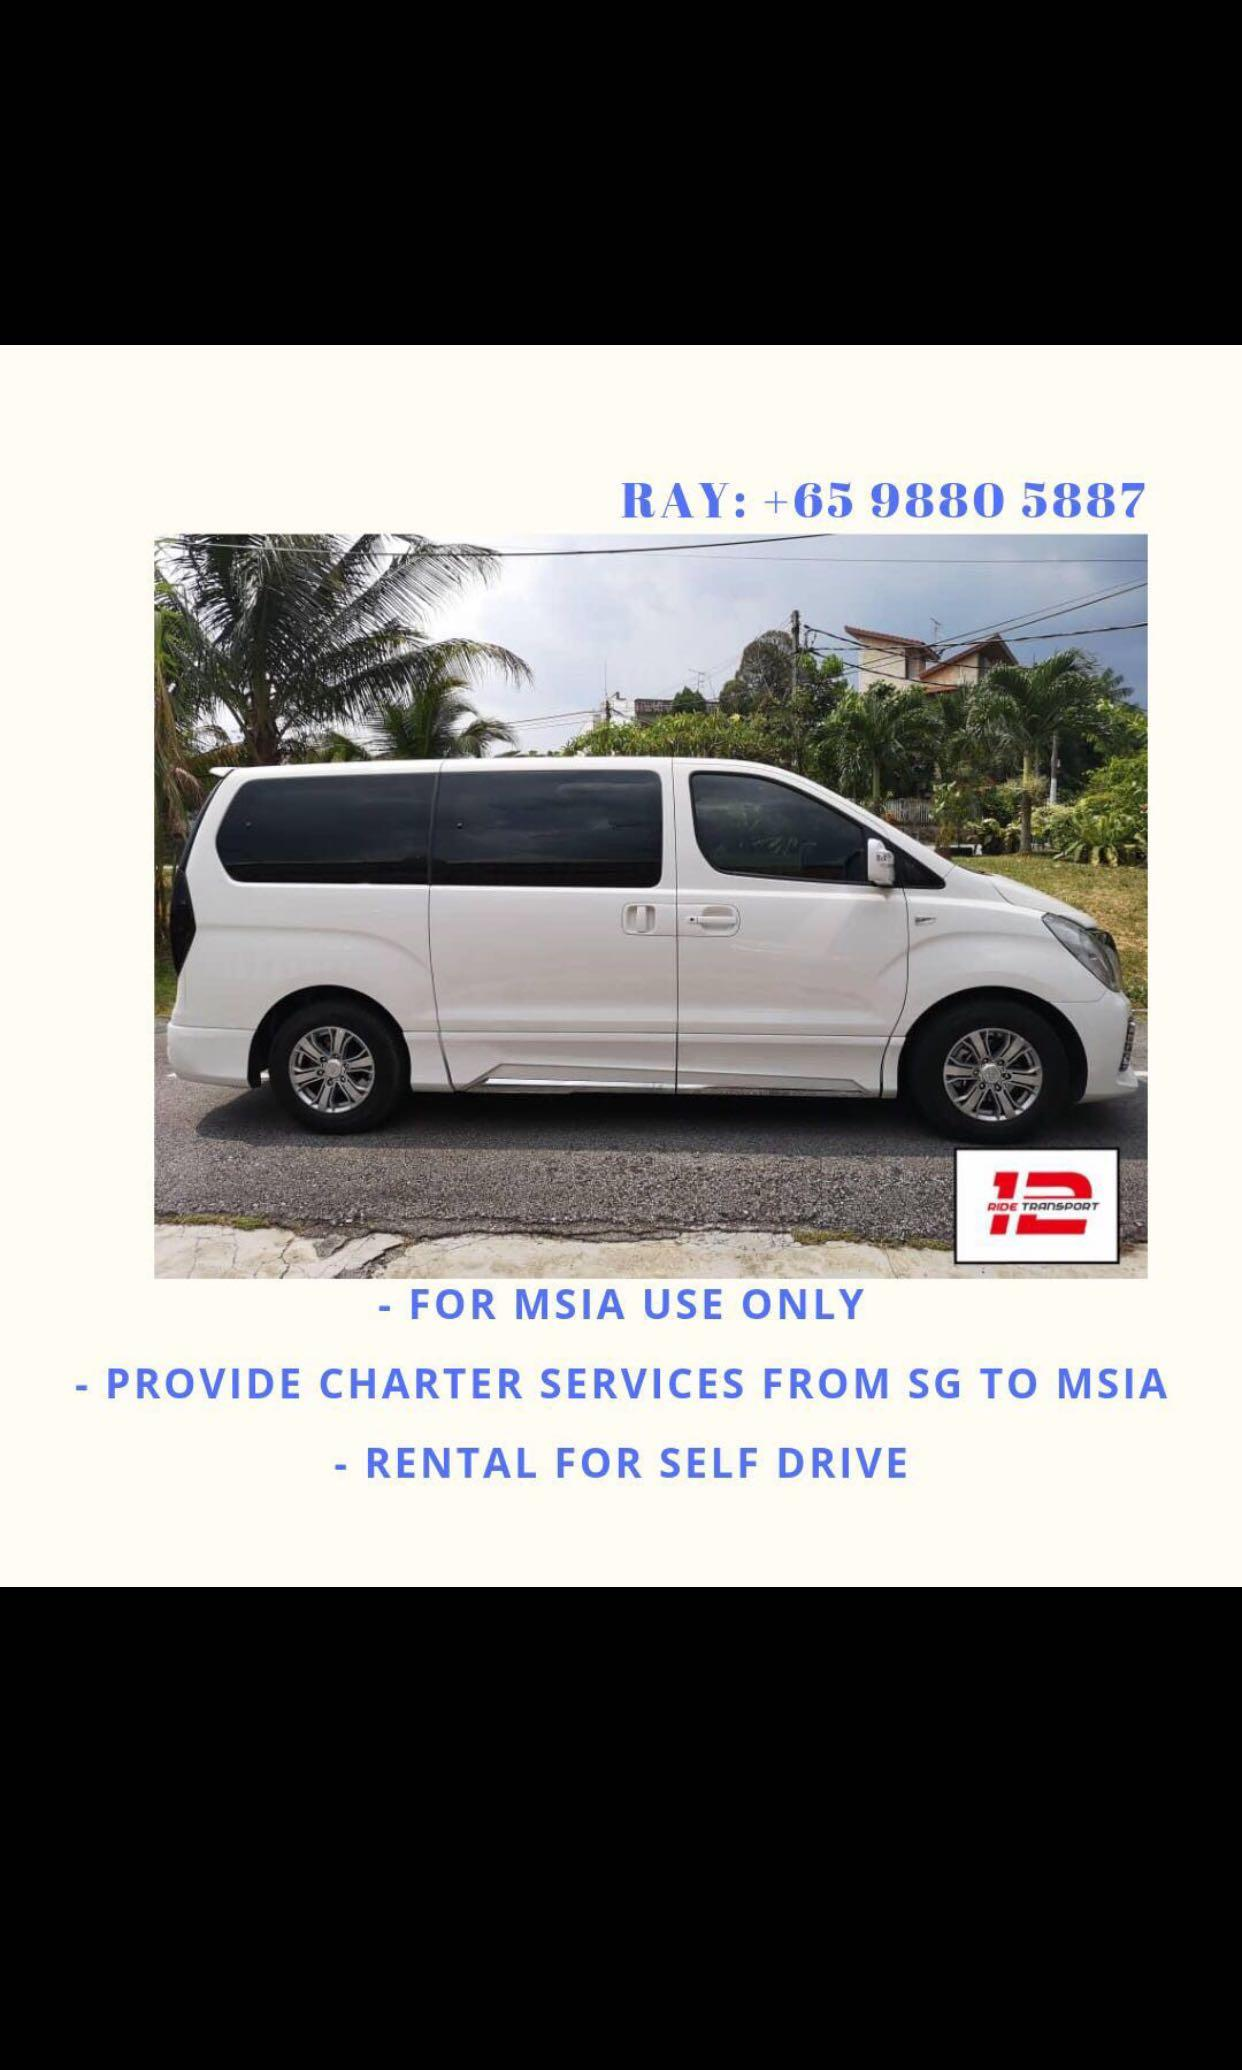 Rental of starex for M'sia usage